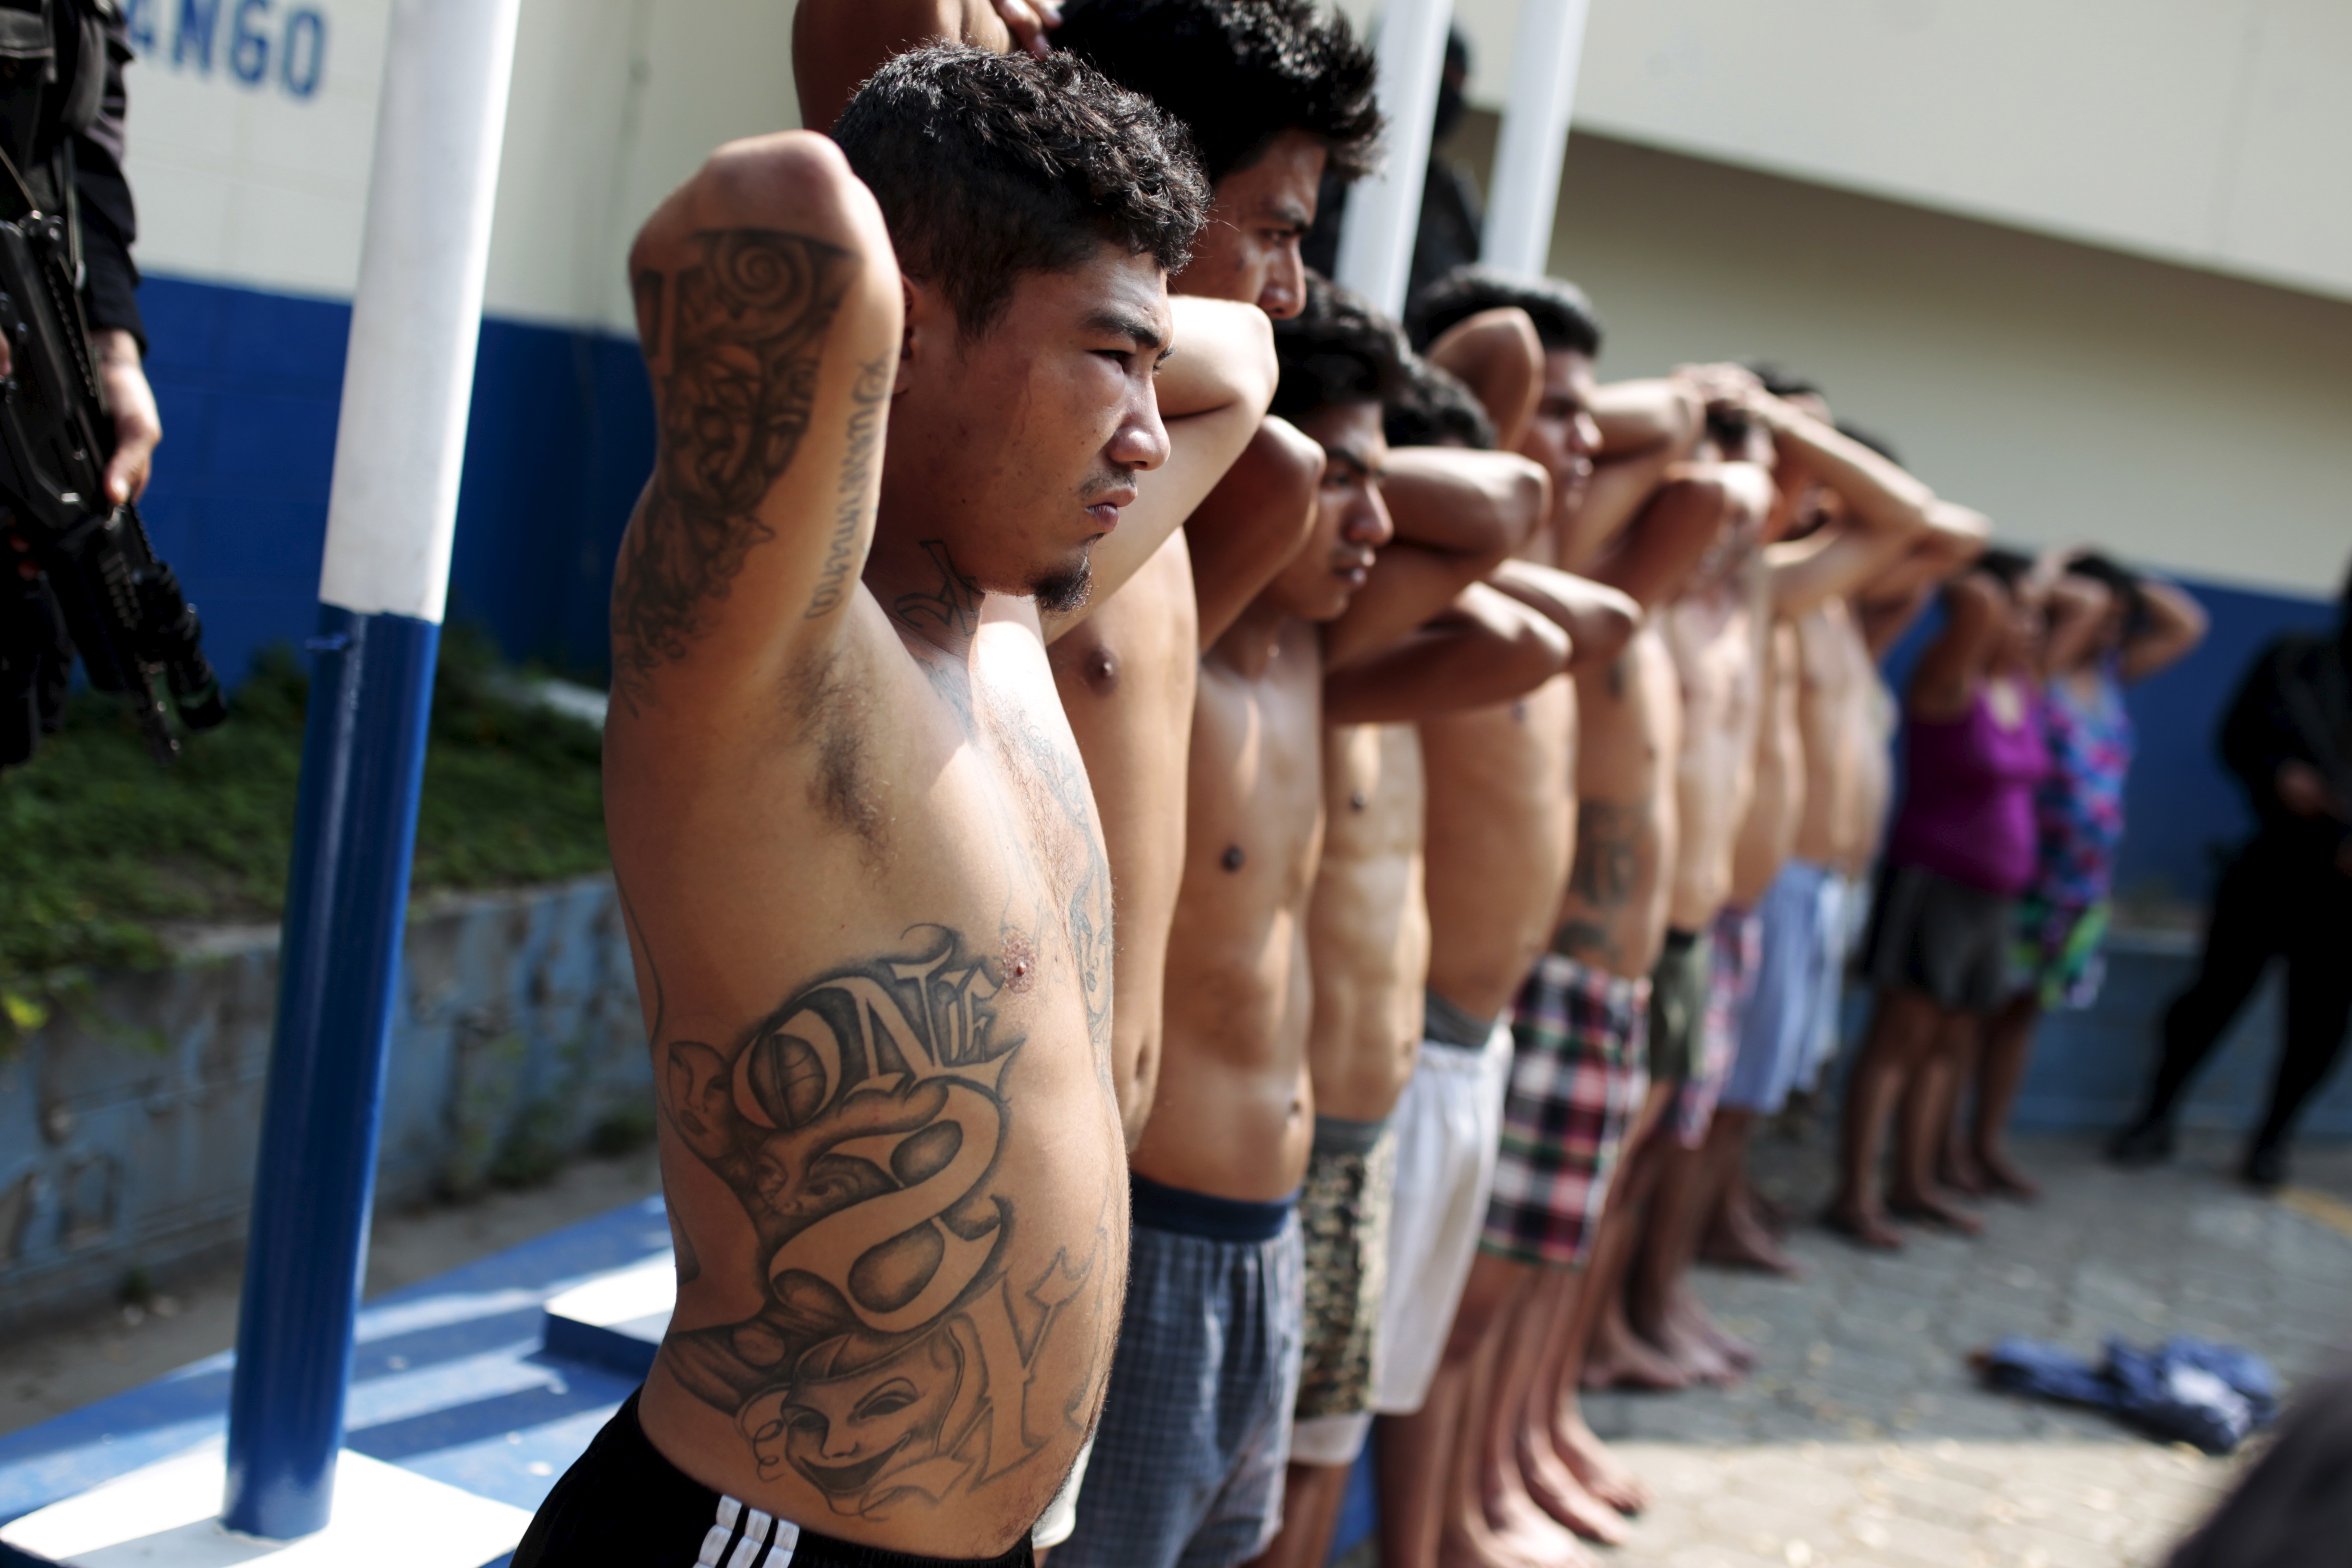 13 suspected members of the 18th street gang are presented to the media after being arrested by the police in Soyapango, El Salvador in March.